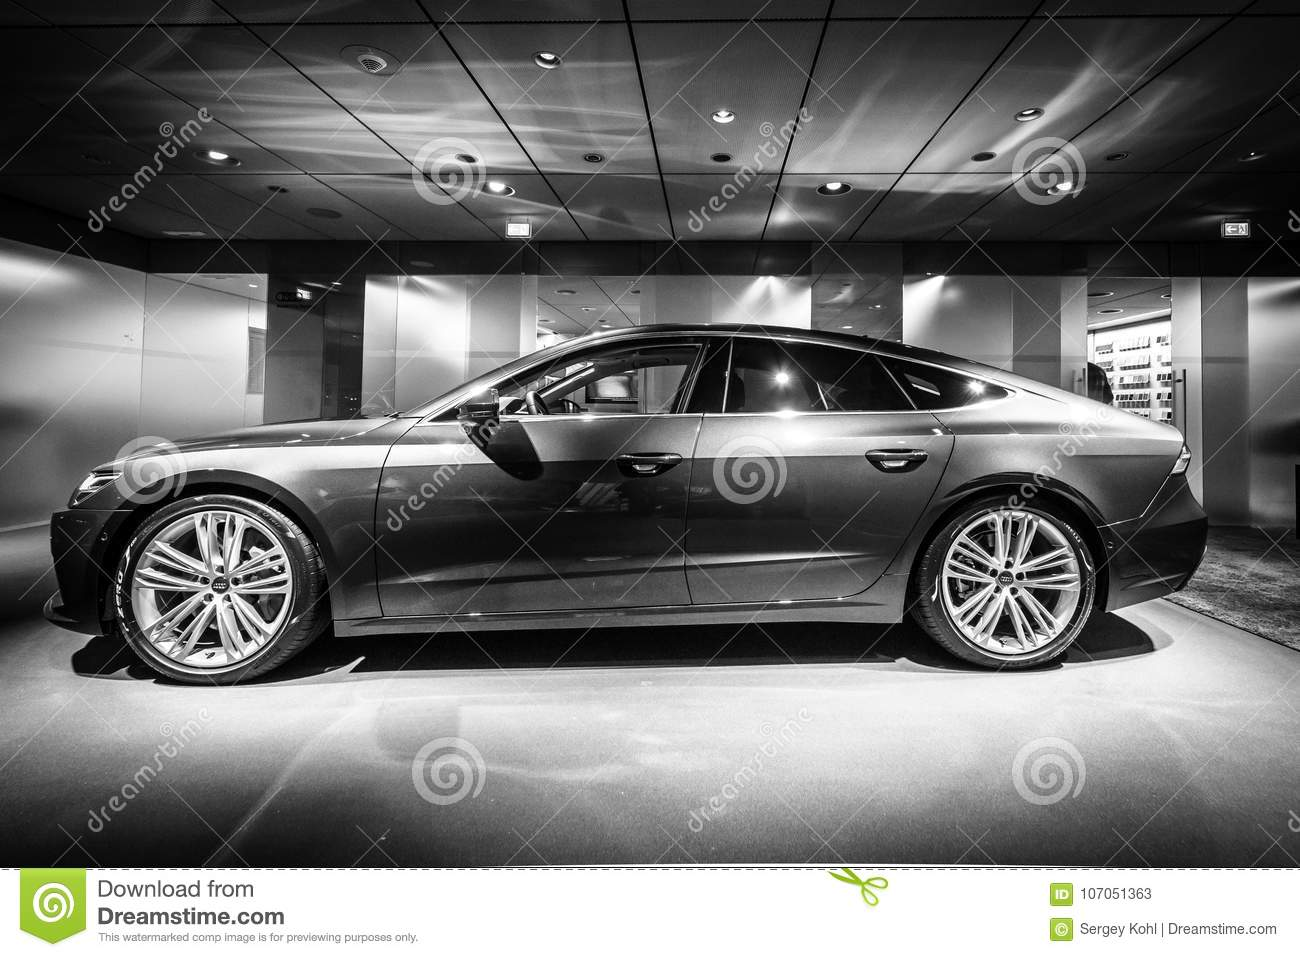 Mid Size Luxury Car Audi A7 Sportback 55 Tfsi Quattro Editorial Automobile S7 Berlin December 21 2017 Showroom Since Black And White